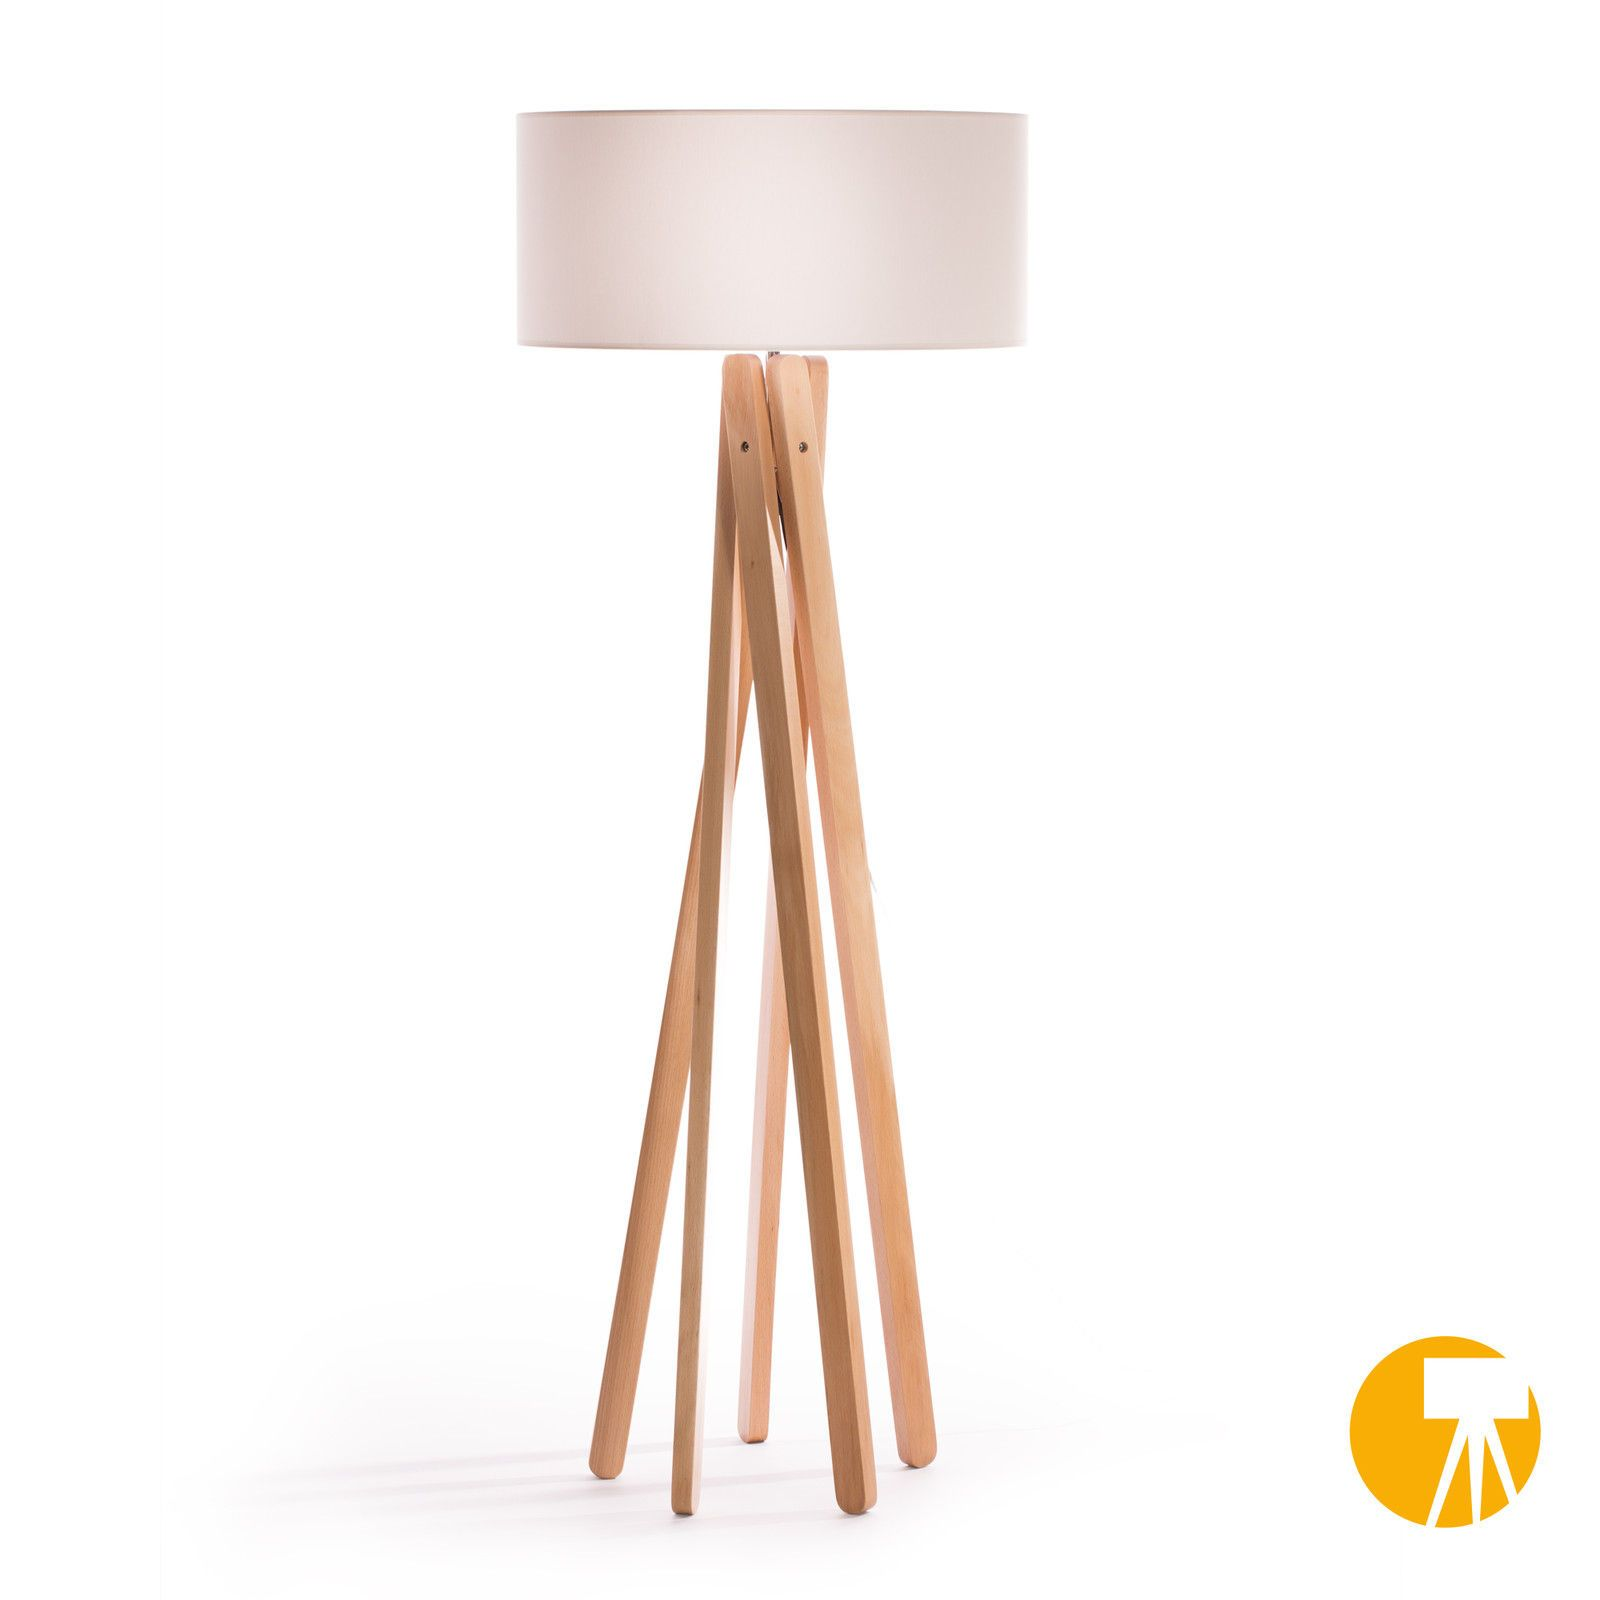 design stehlampe tripod leuchte buche holz lampe h 160cm stativ stehleuchte wei for sale eur. Black Bedroom Furniture Sets. Home Design Ideas